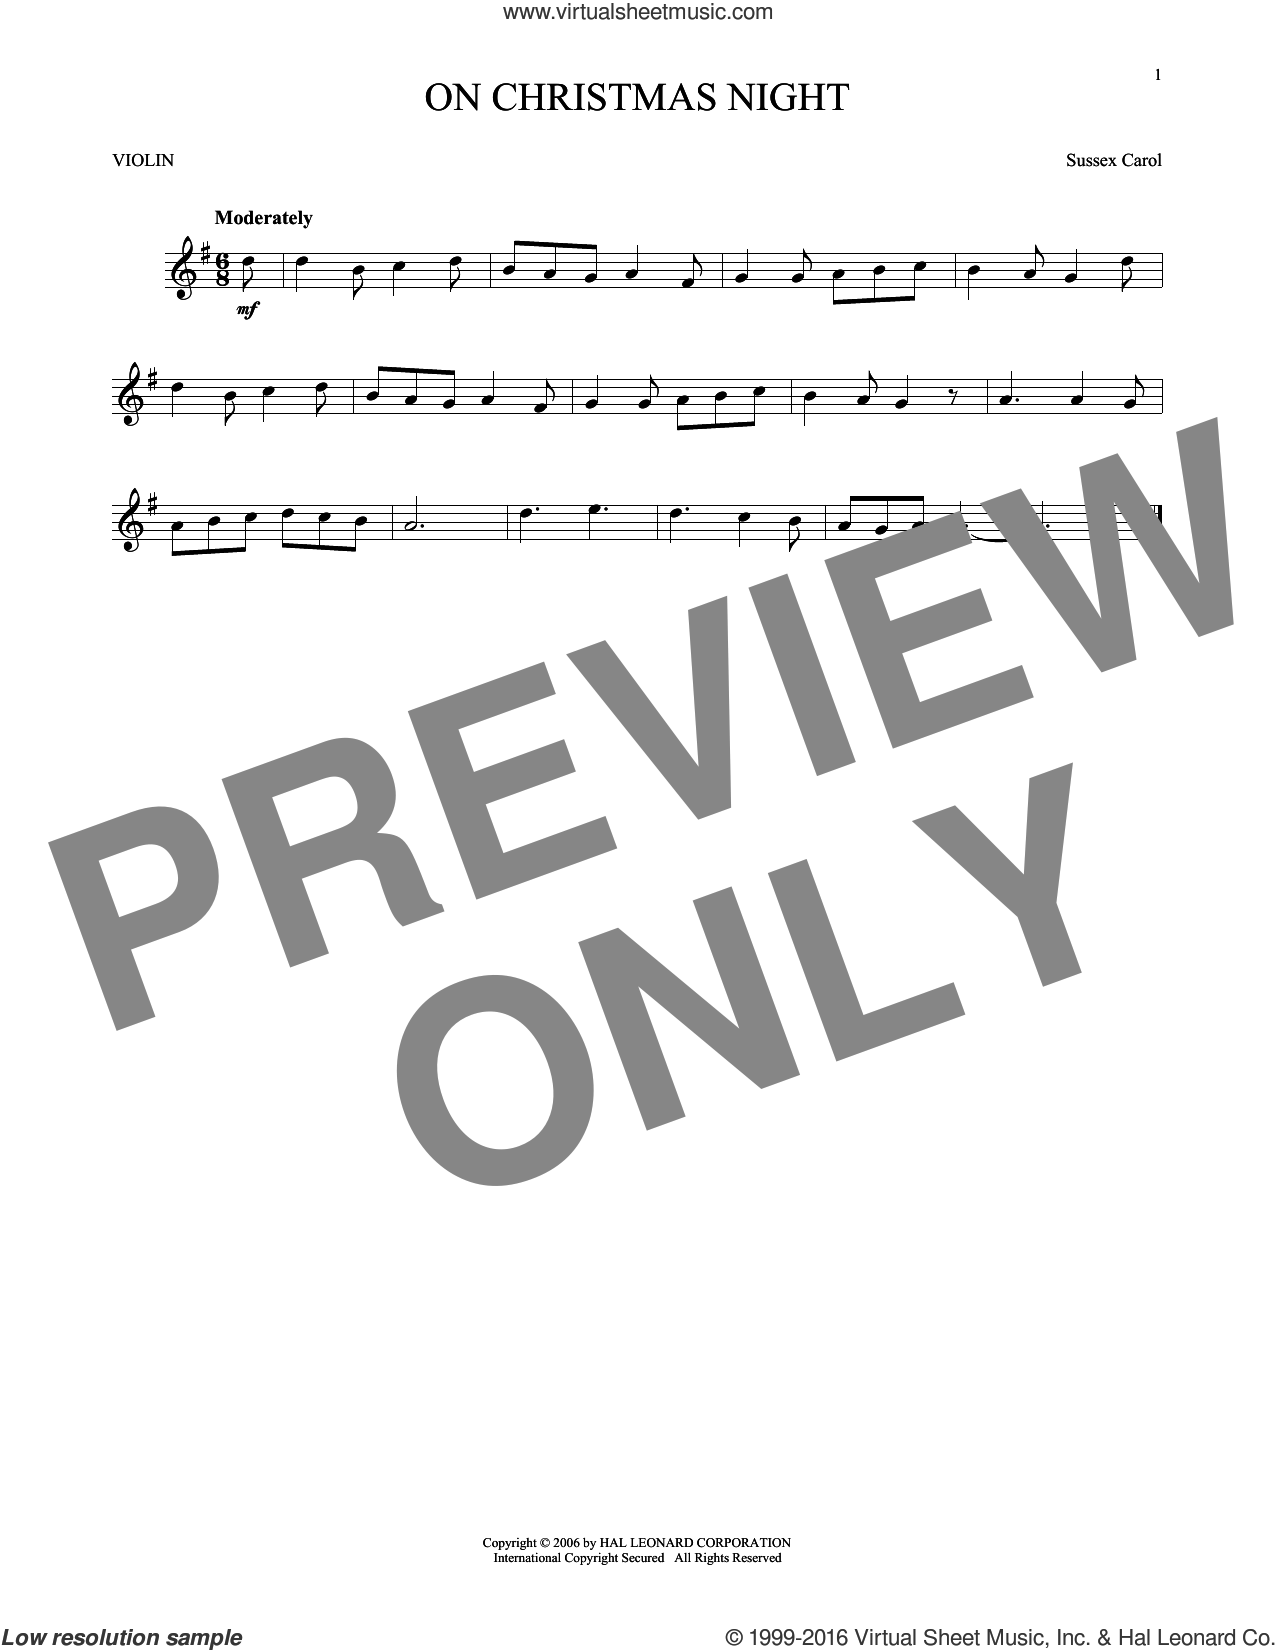 On Christmas Night sheet music for violin solo, intermediate skill level